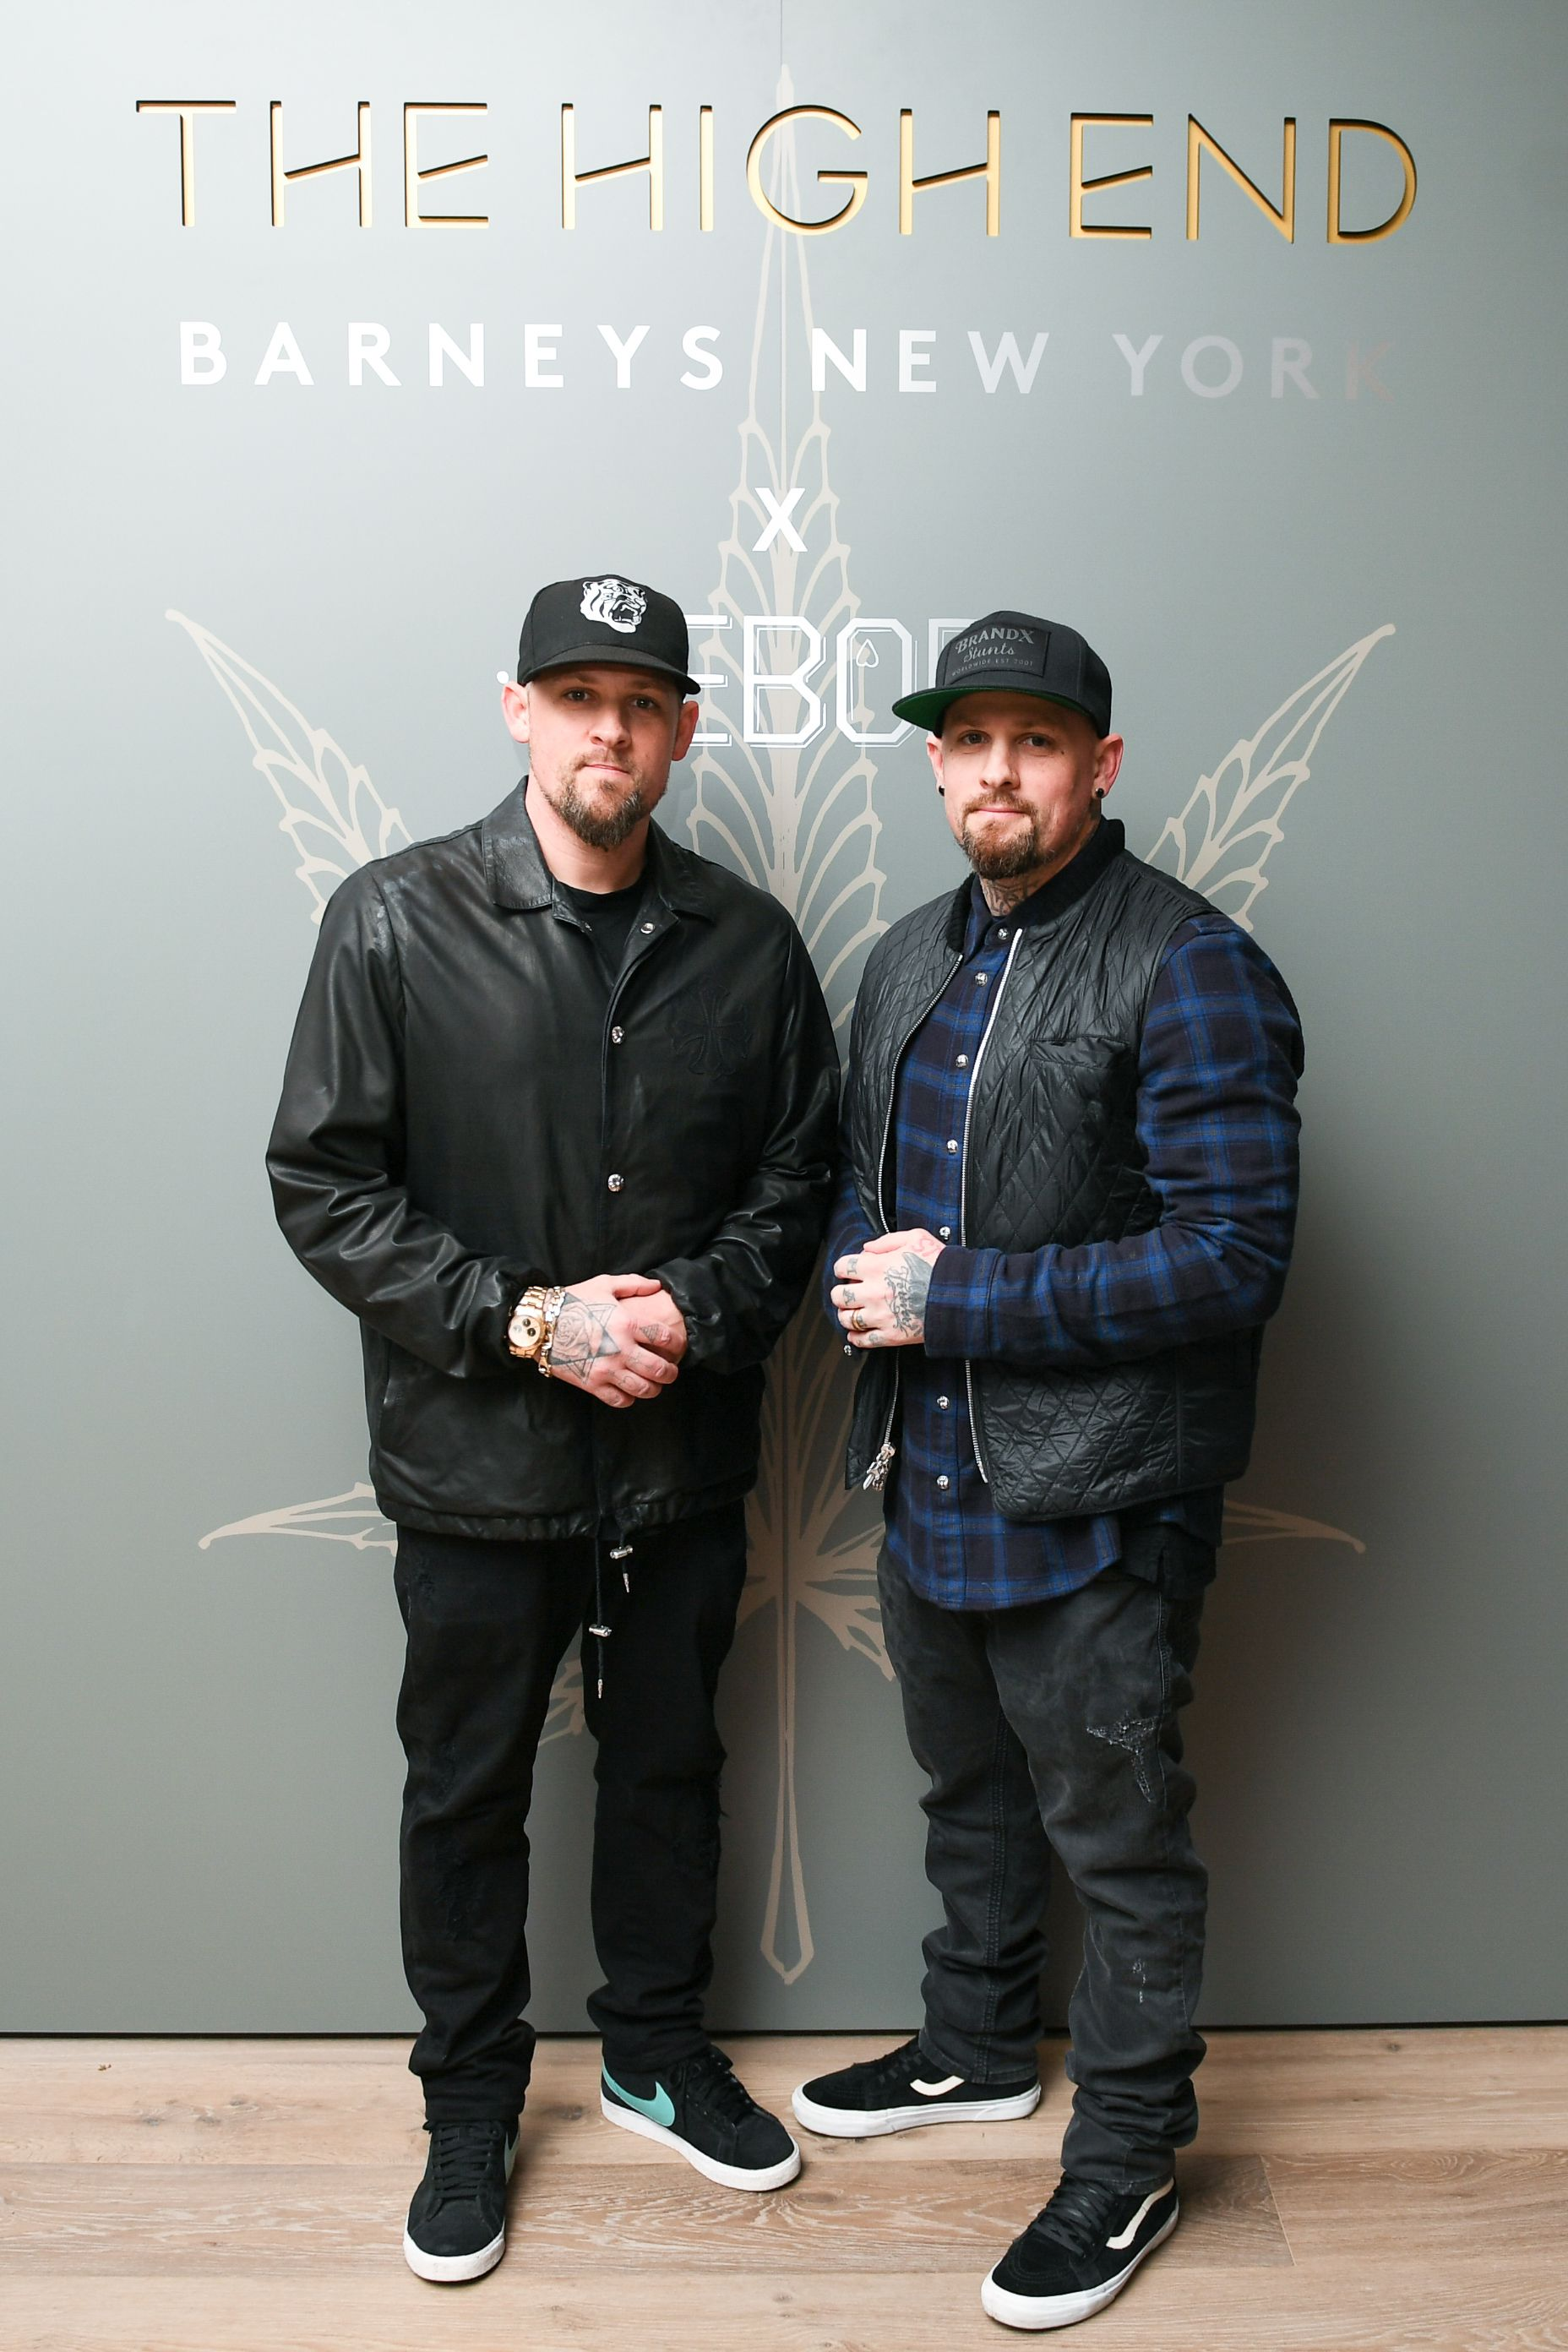 Benji and Joel Madden Benji and Joel Madden celebrate the launch of Barneys New York's The High End hosted by Beboe, along with Matthew Mazzucca, Scott Campbell and Clement Kwan, on March 20.